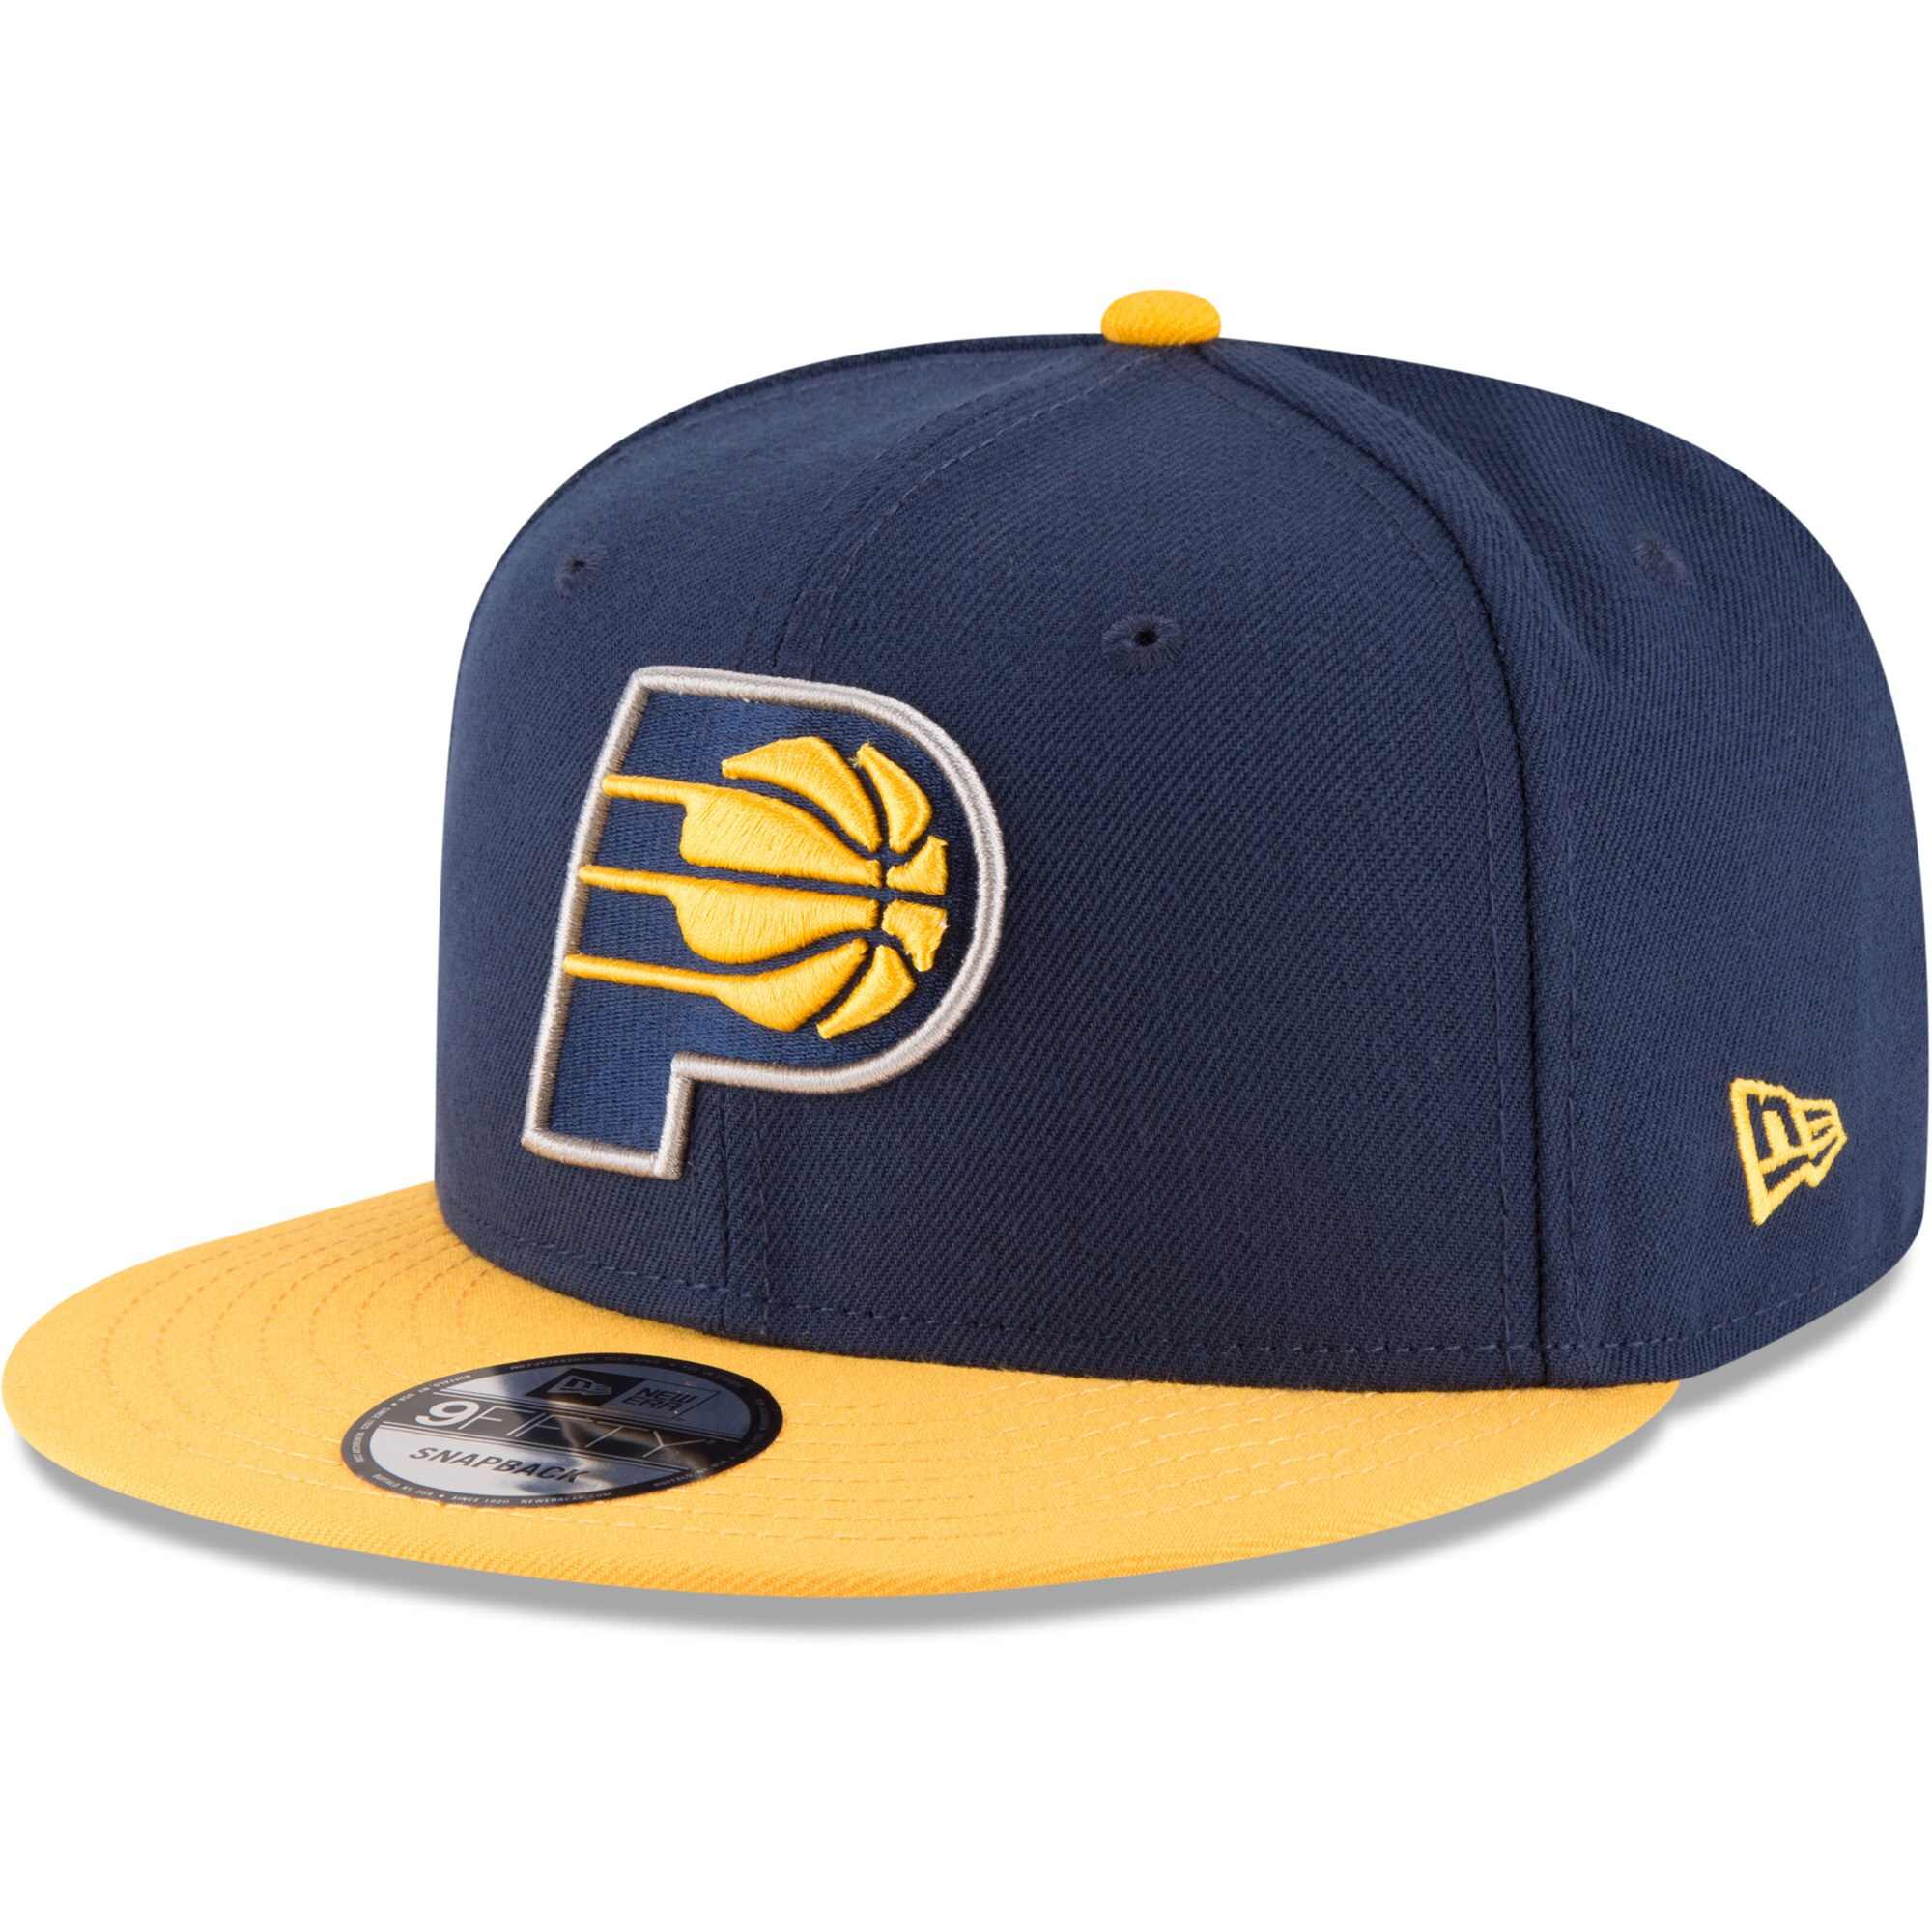 Indiana Pacers New Era Two-Tone 9FIFTY Adjustable Hat - Navy/Gold